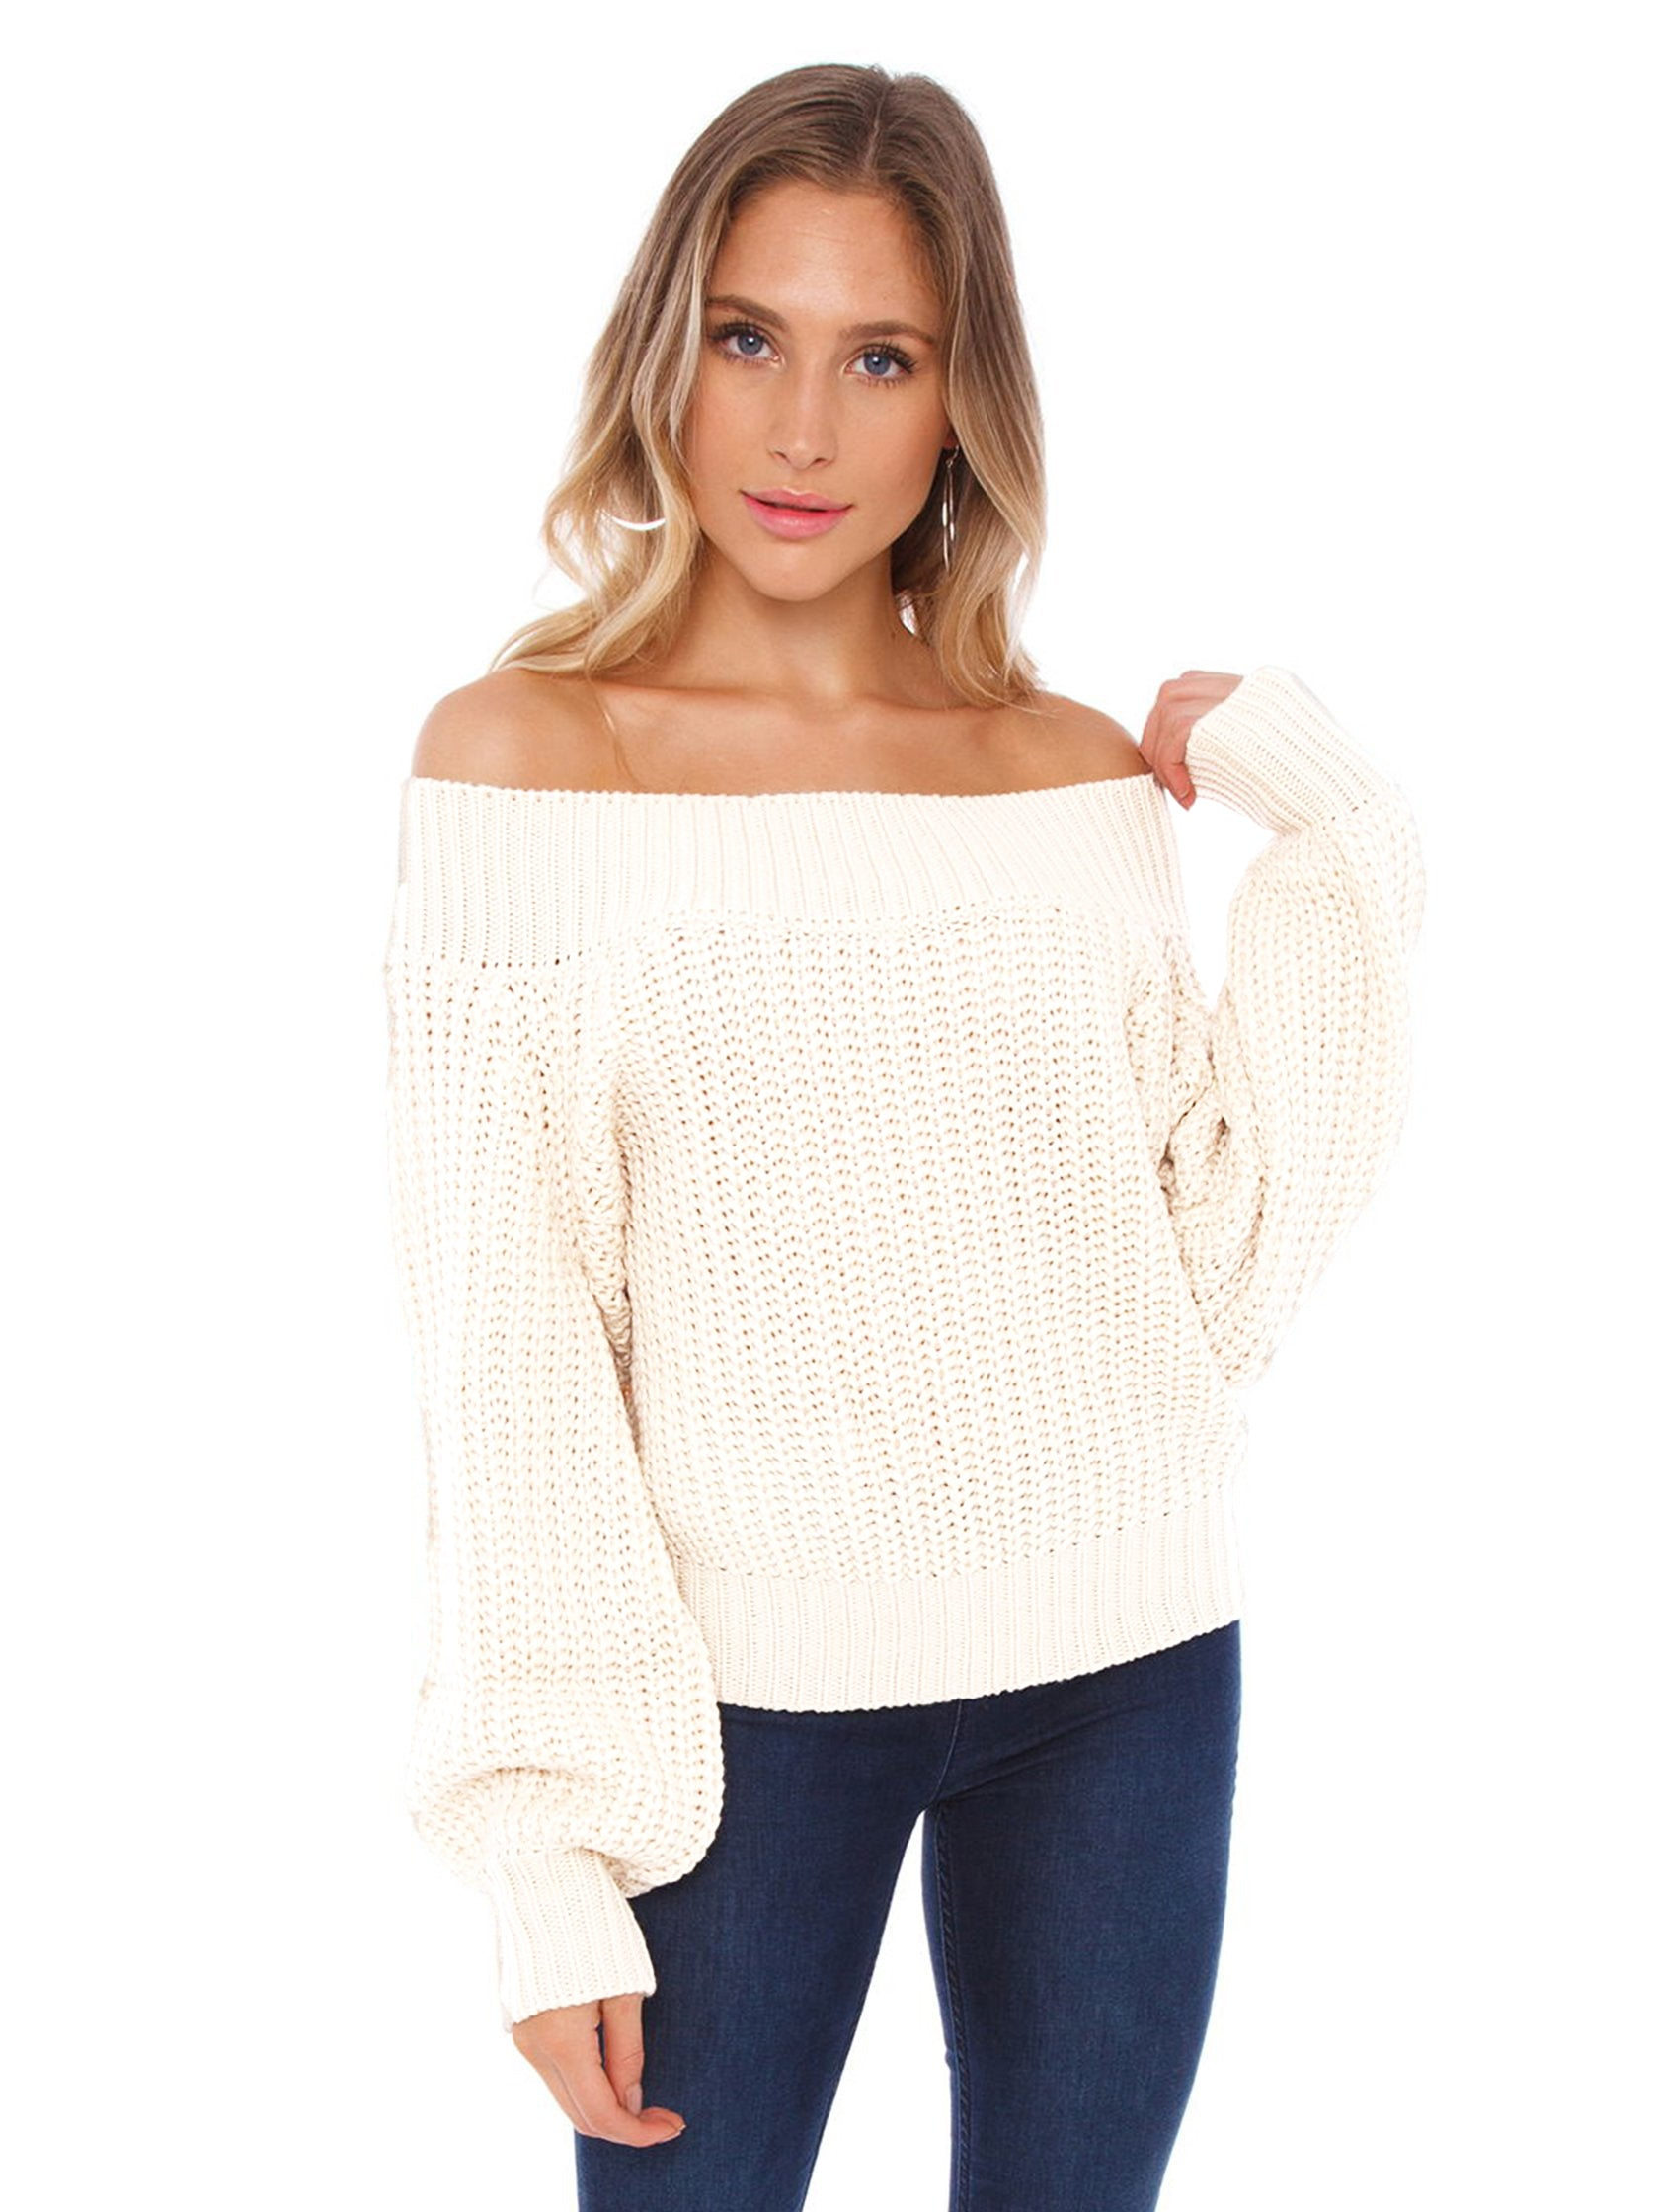 Girl outfit in a sweater rental from FASHIONPASS called Chrissy Off Shoulder Sweater